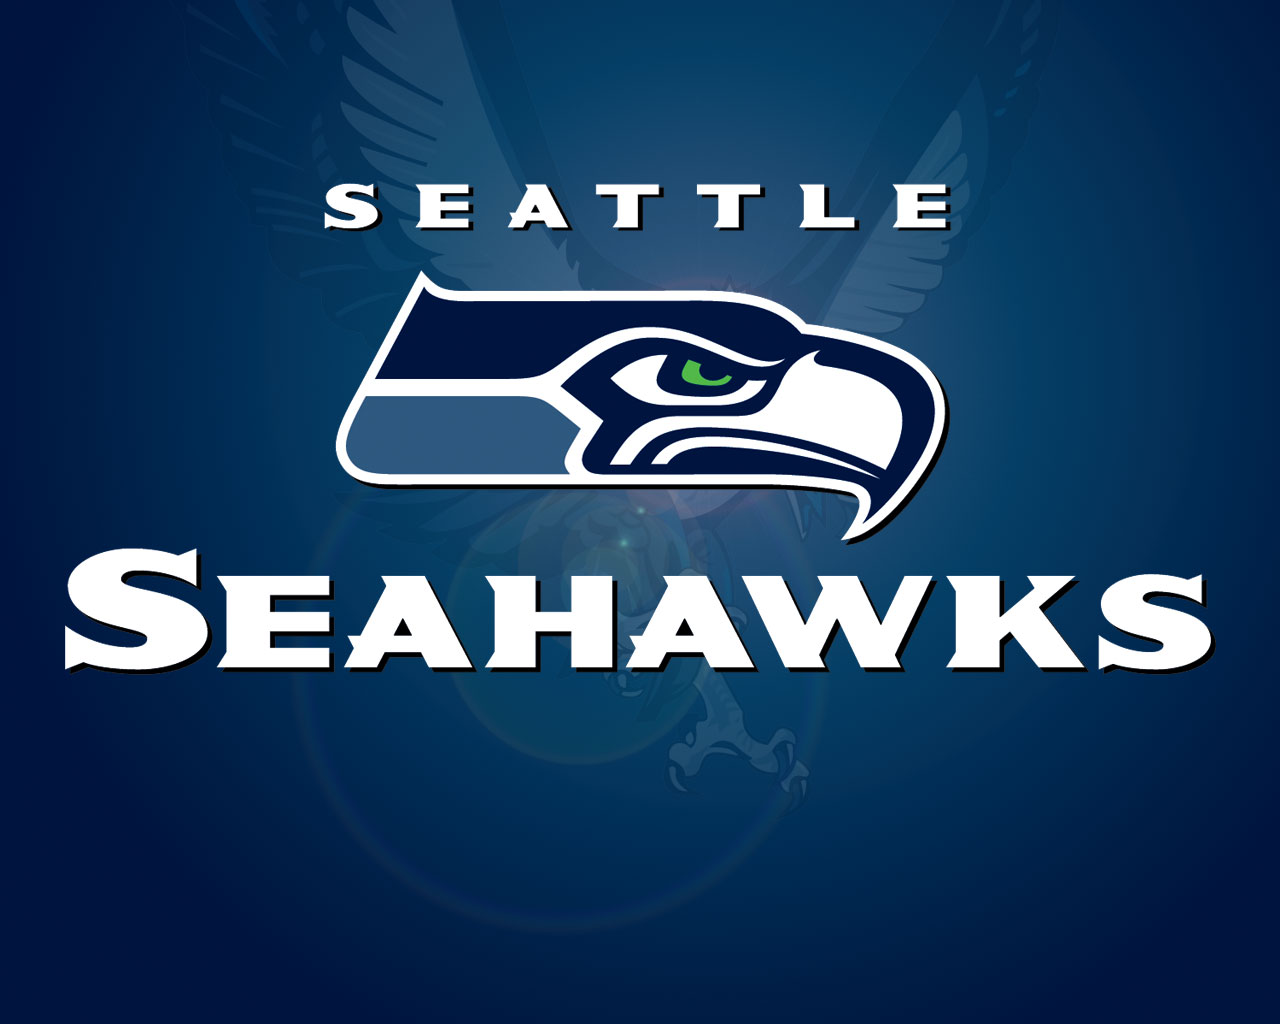 Seattle Seahawks (12-4) NFC Champions